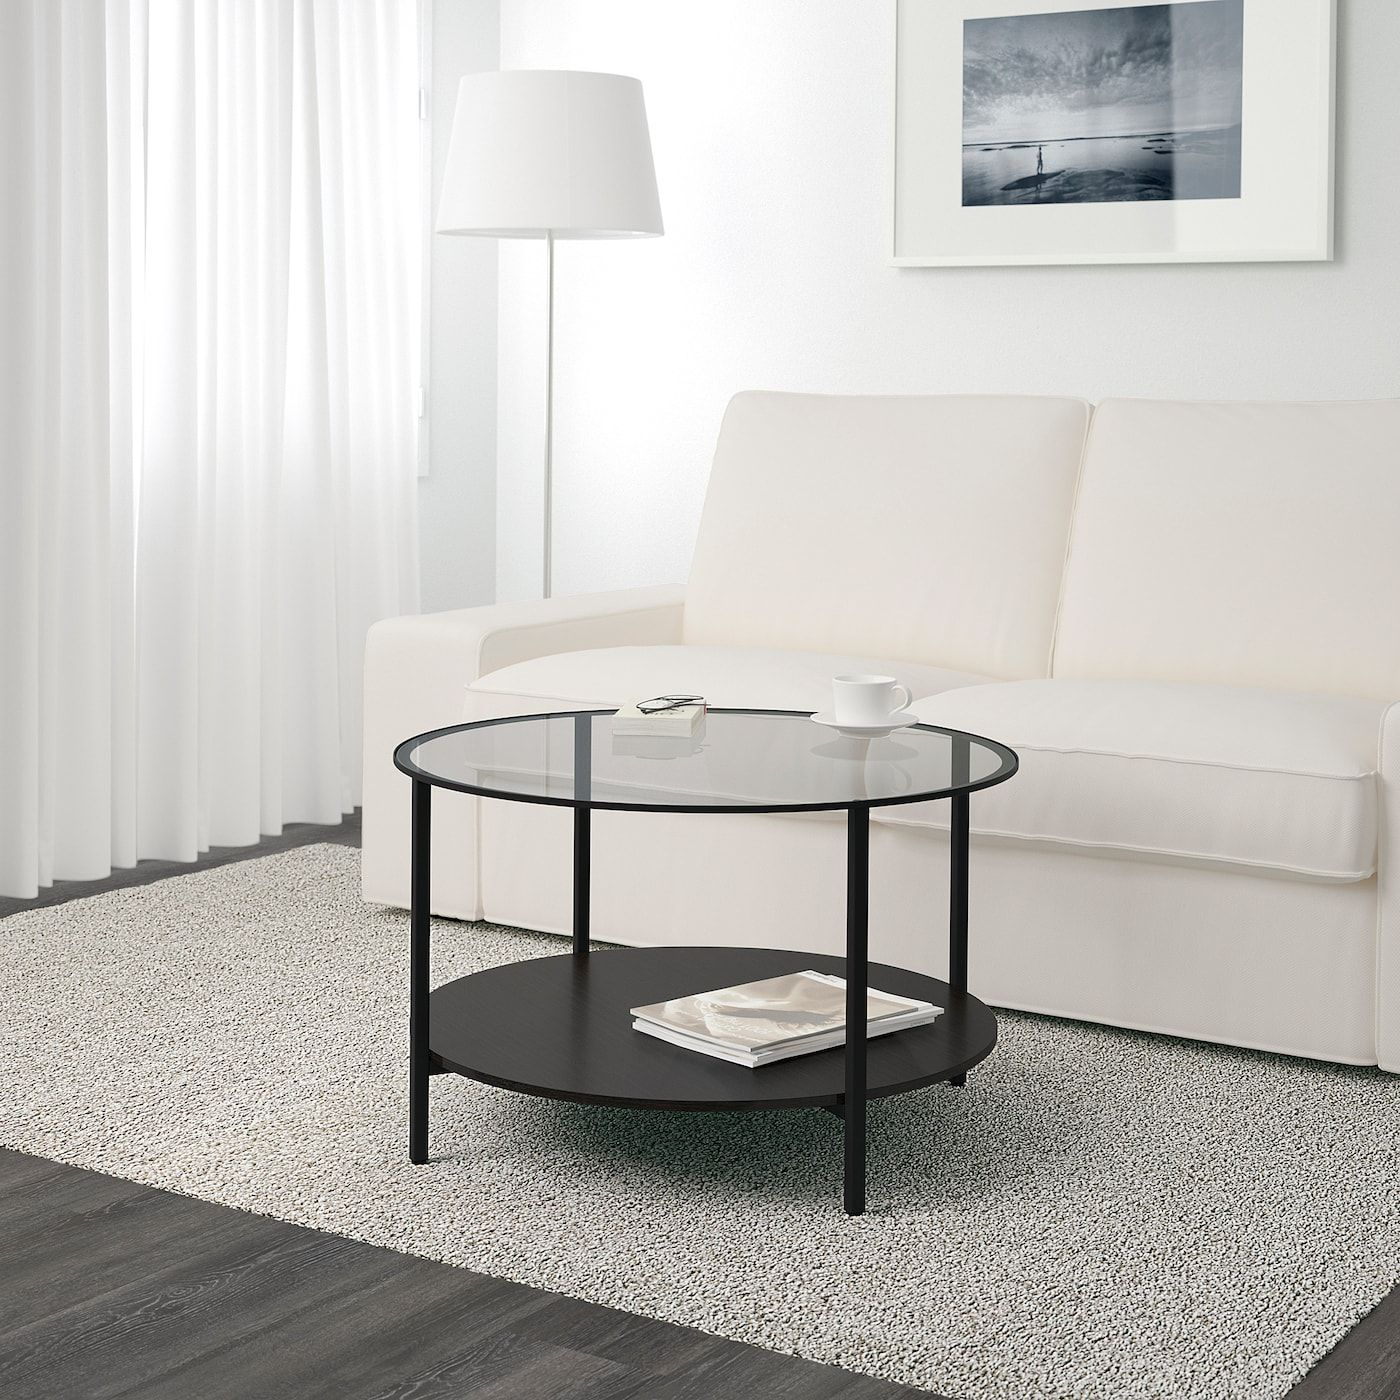 Ikea Couchtisch Mit Glas VittsjÖ Coffee Table, Black-brown/glass, 291/2\